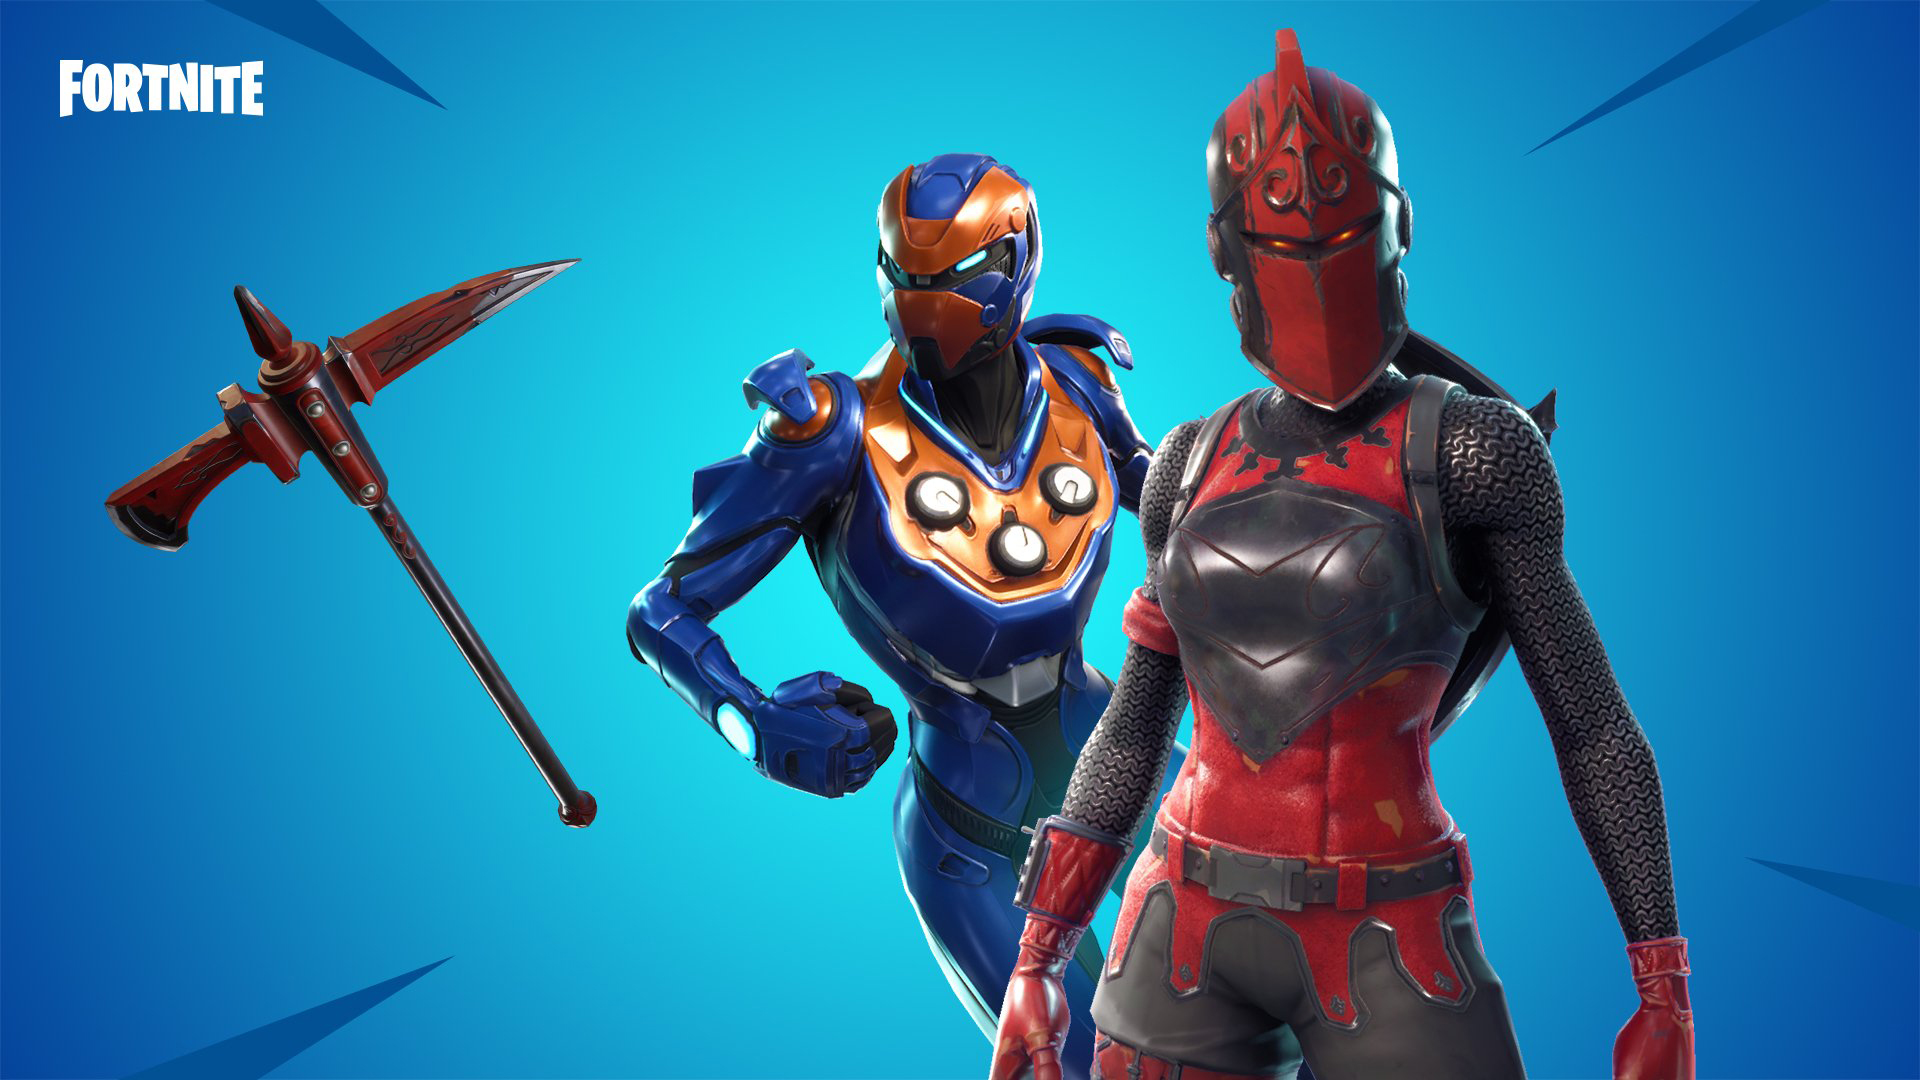 Fortnite Red Knight Skin   Outfit PNGs Images   Pro Game Guides 1920x1080